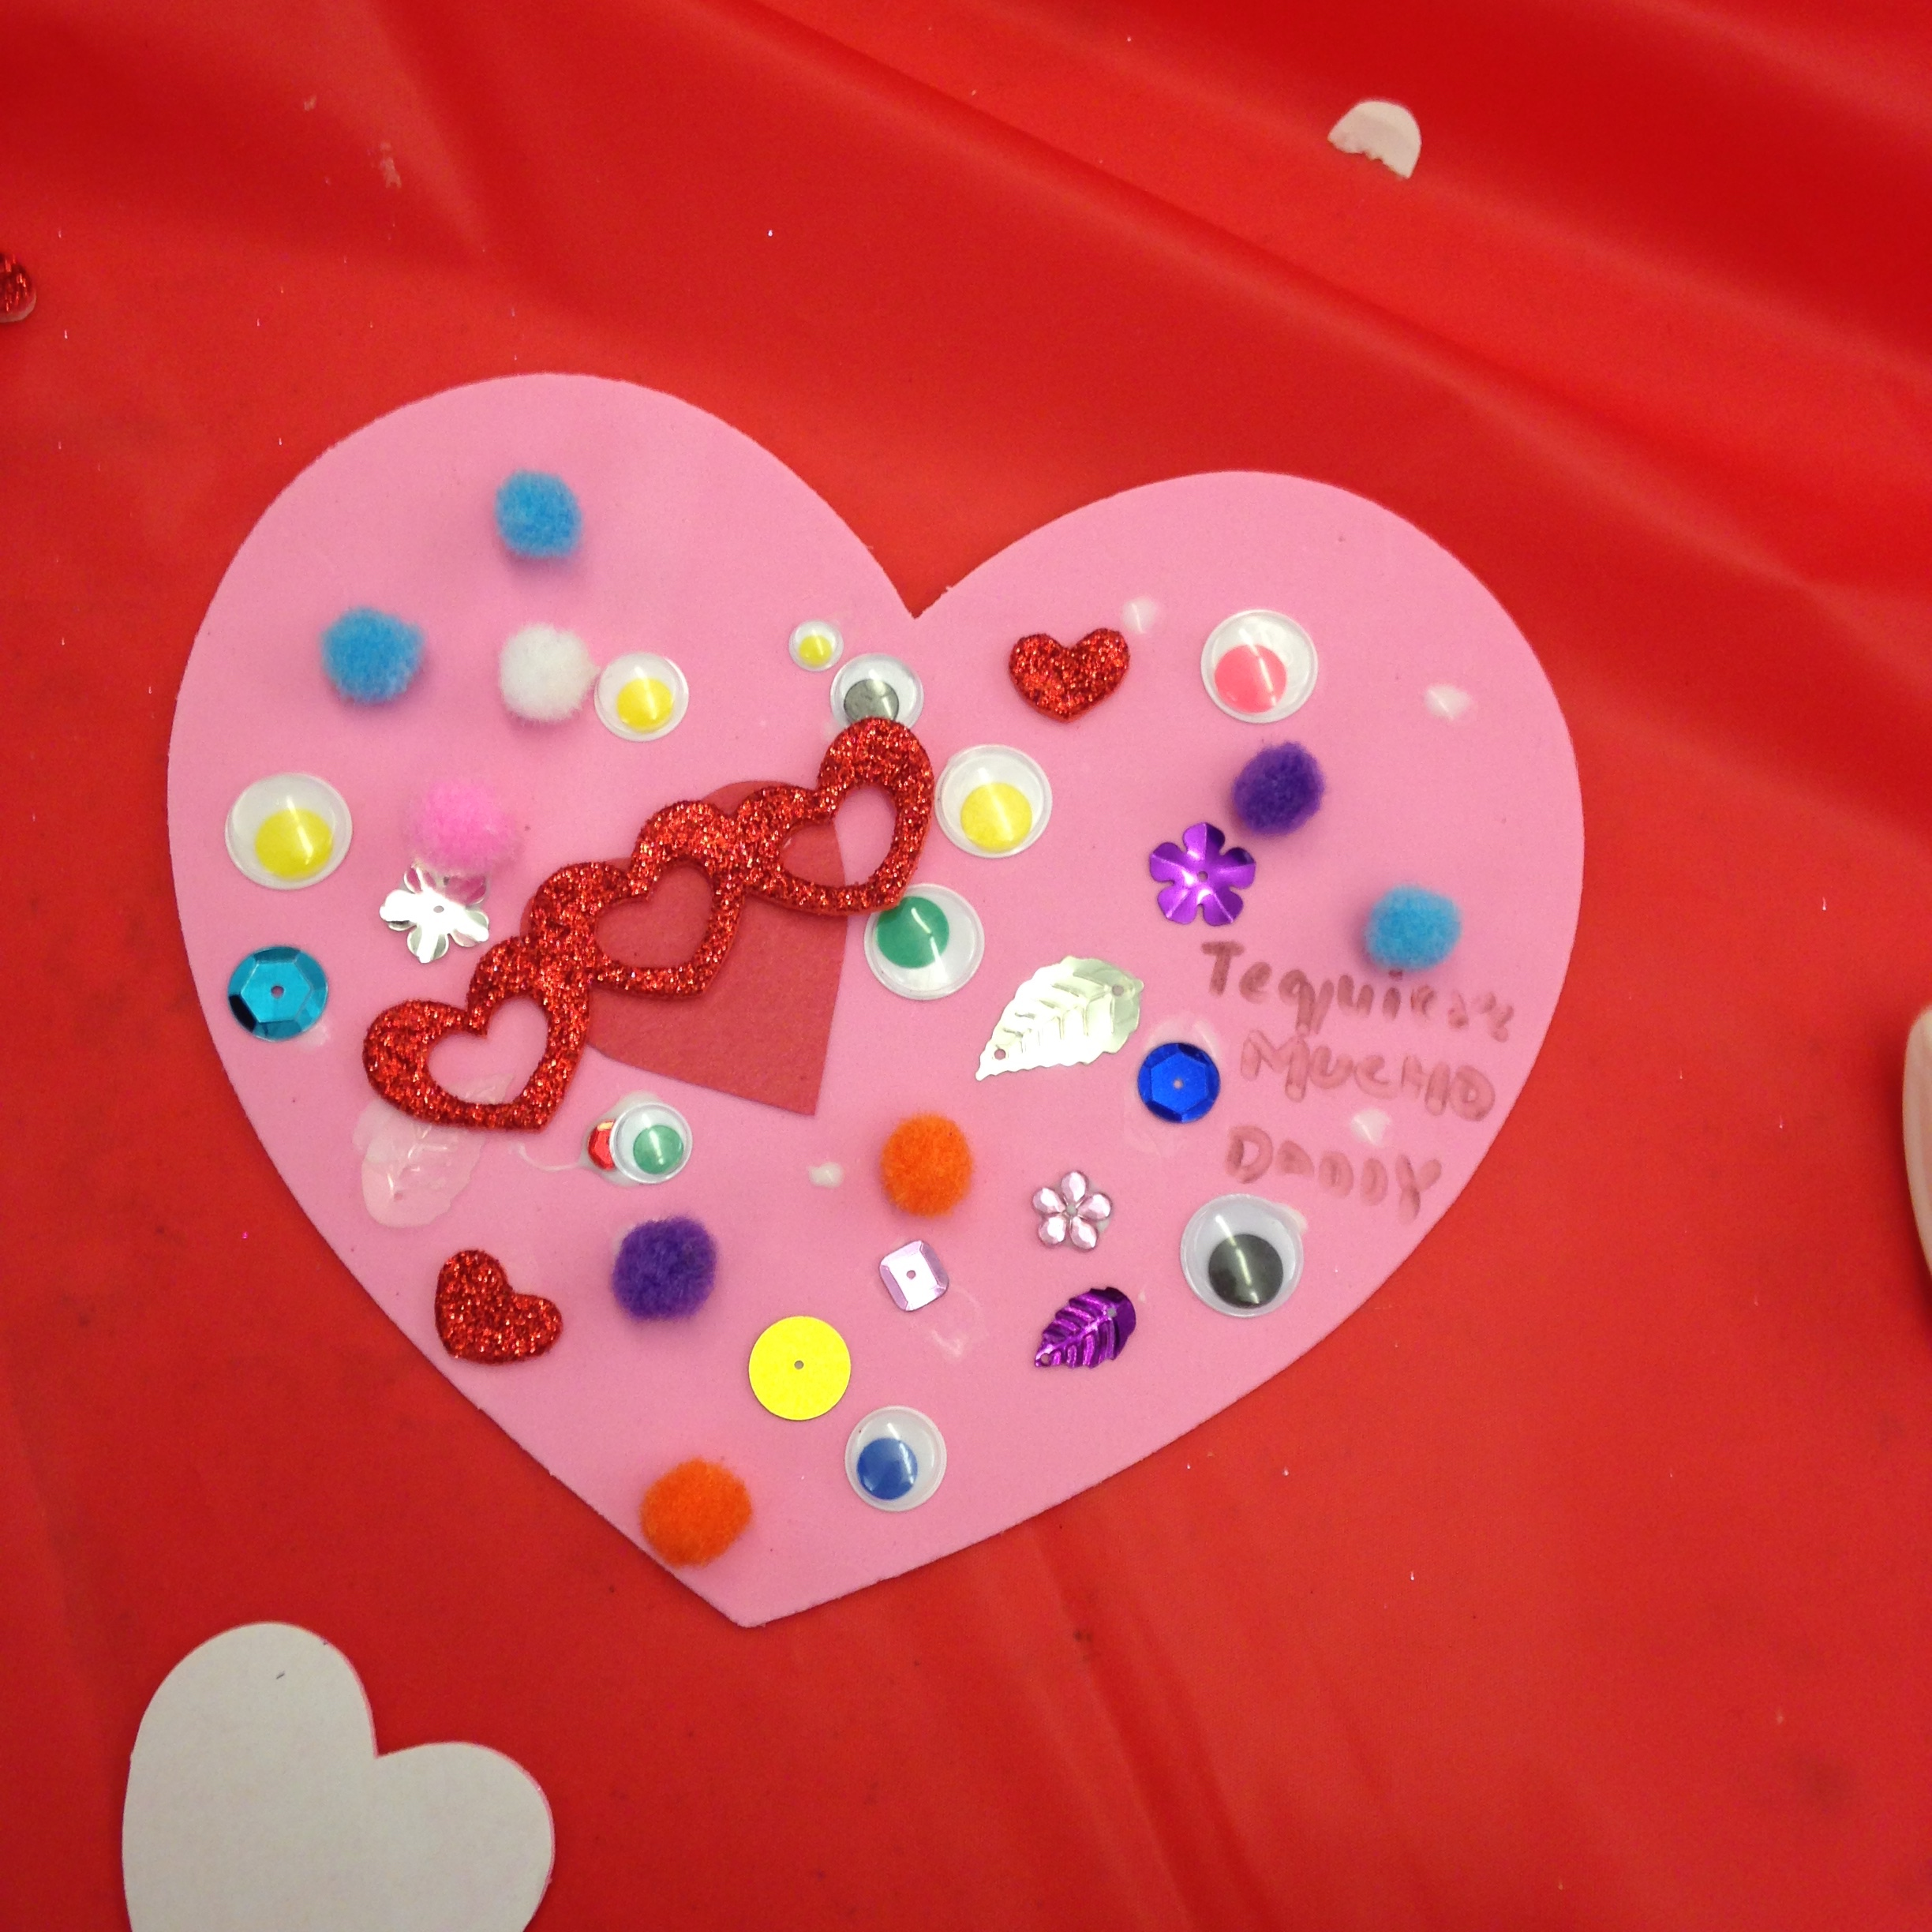 The Union City Valentine Card Making Event